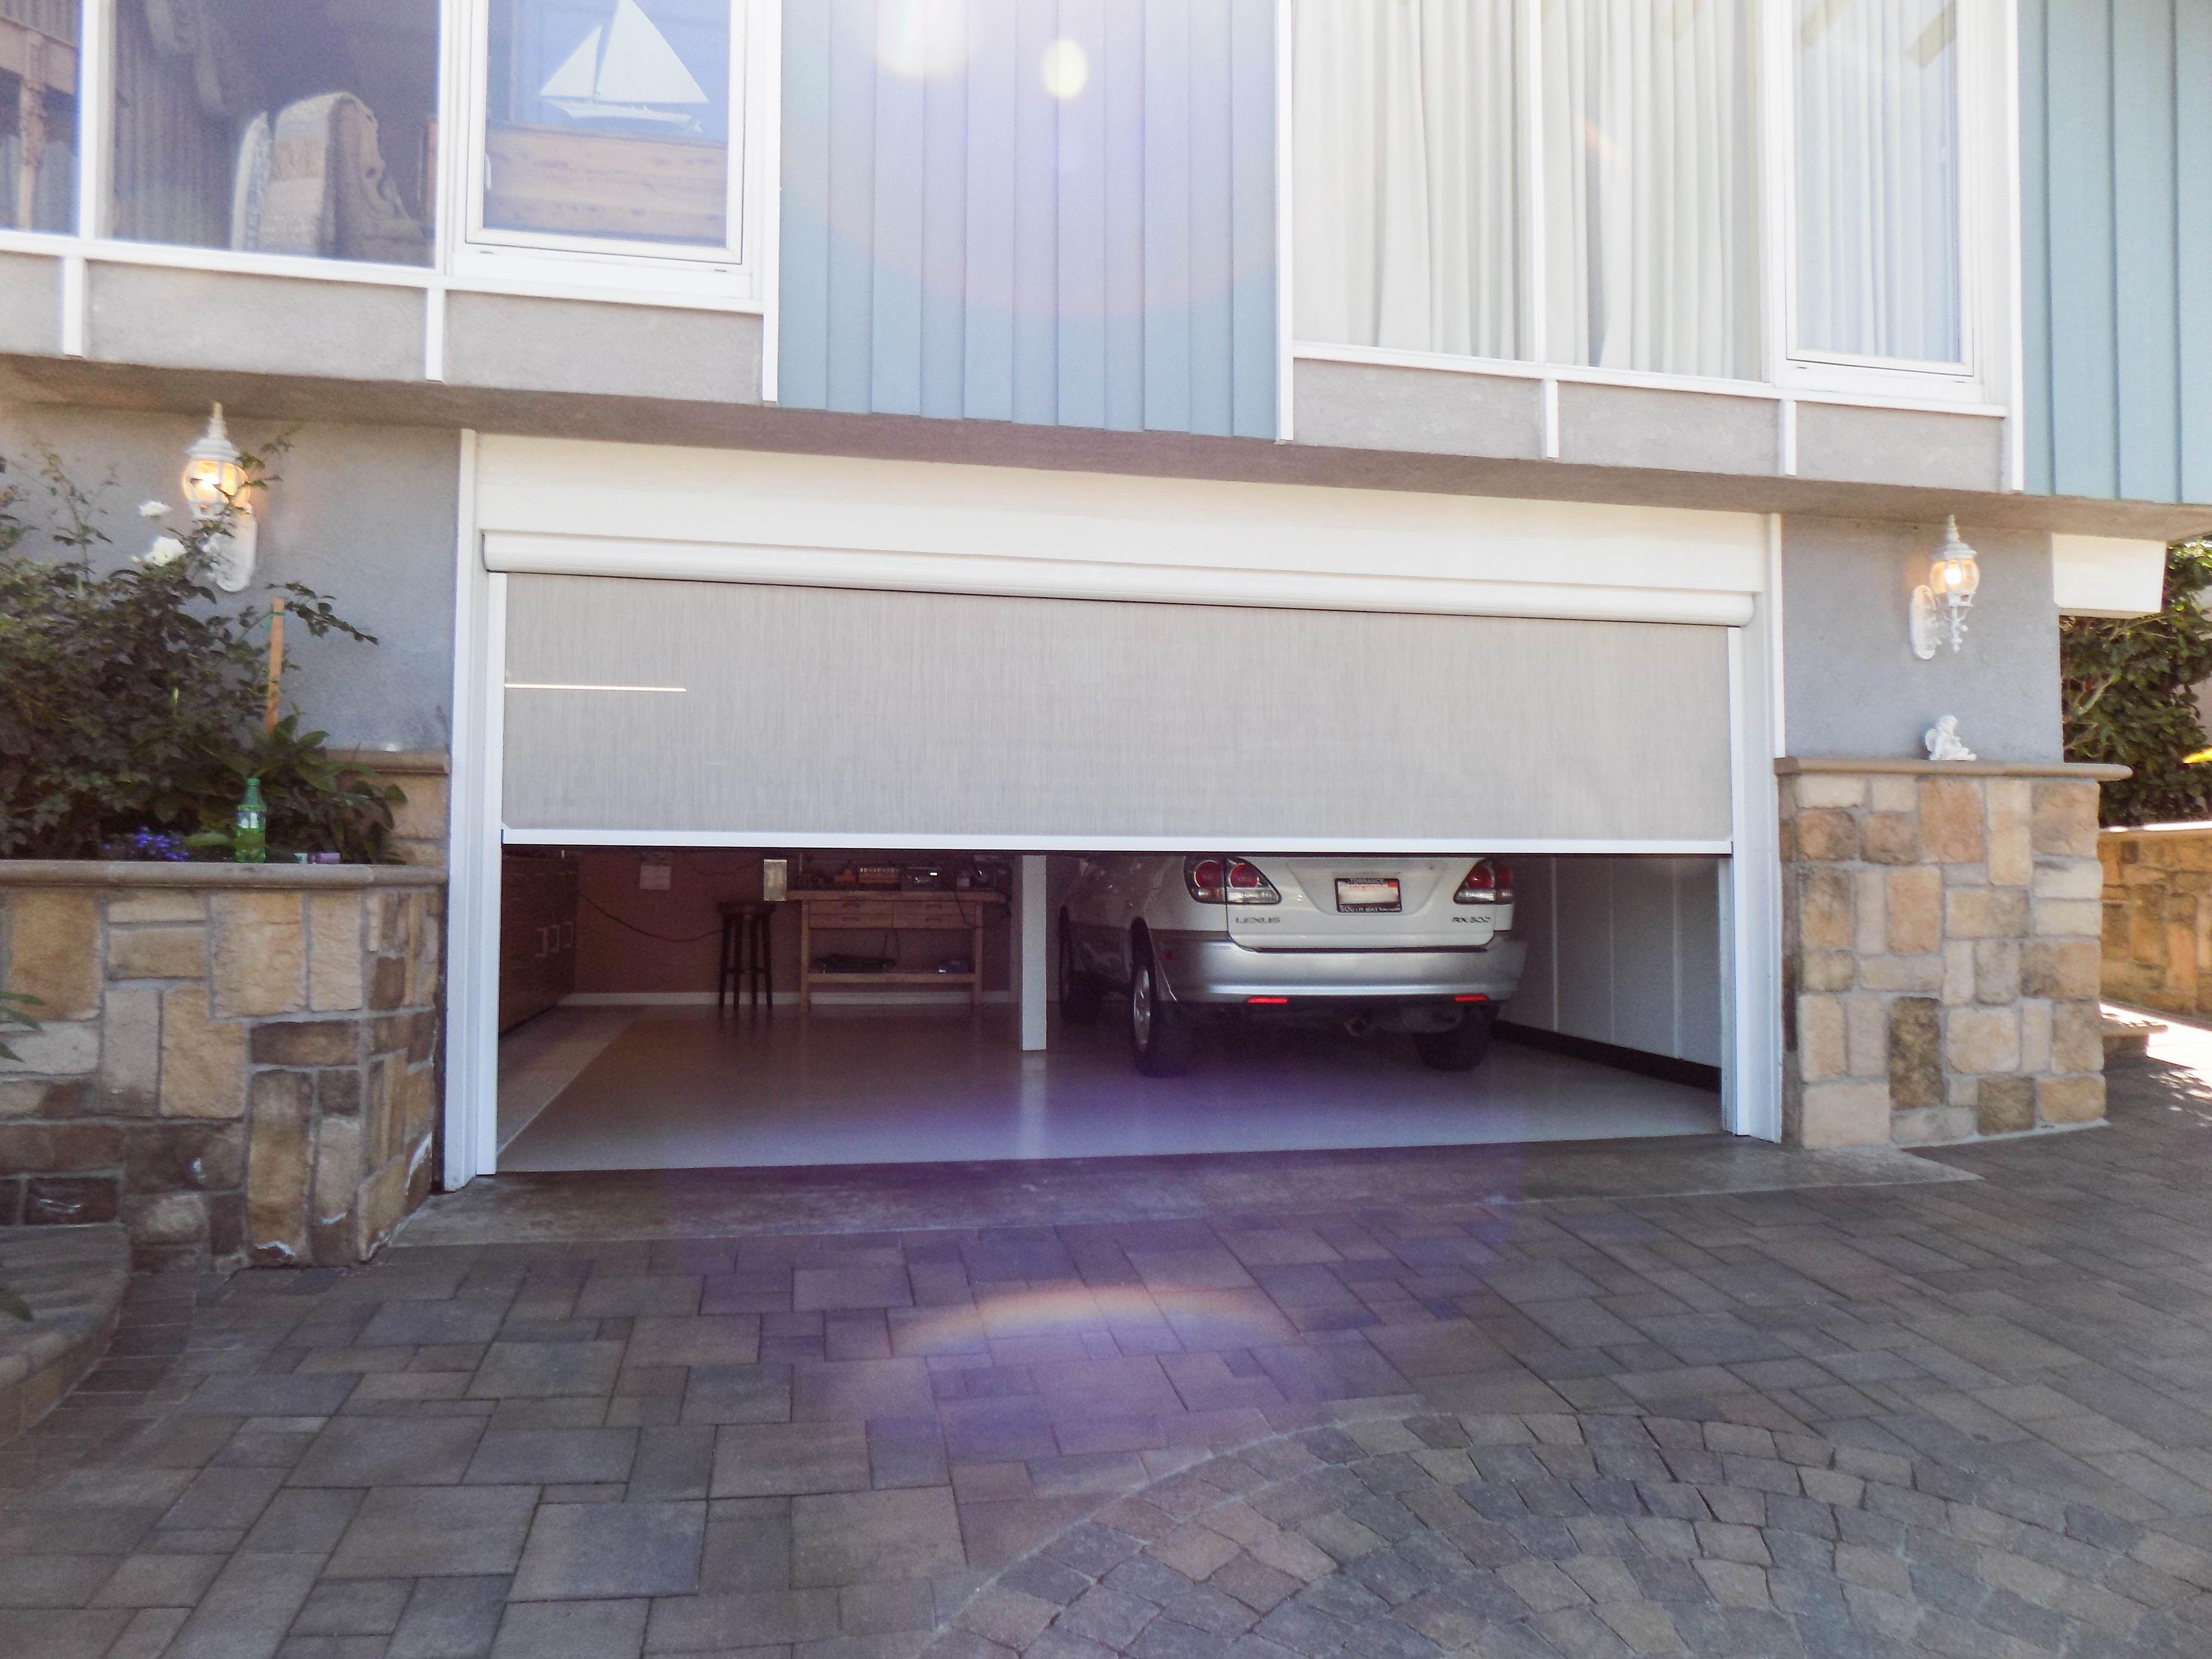 Want To Motorize Your Rollup Shutters Doors Or Increase Speed Of Your Automatic Overhead Rollup Door Call Roll Up Doors Roll Up Garage Door Garage Door Design